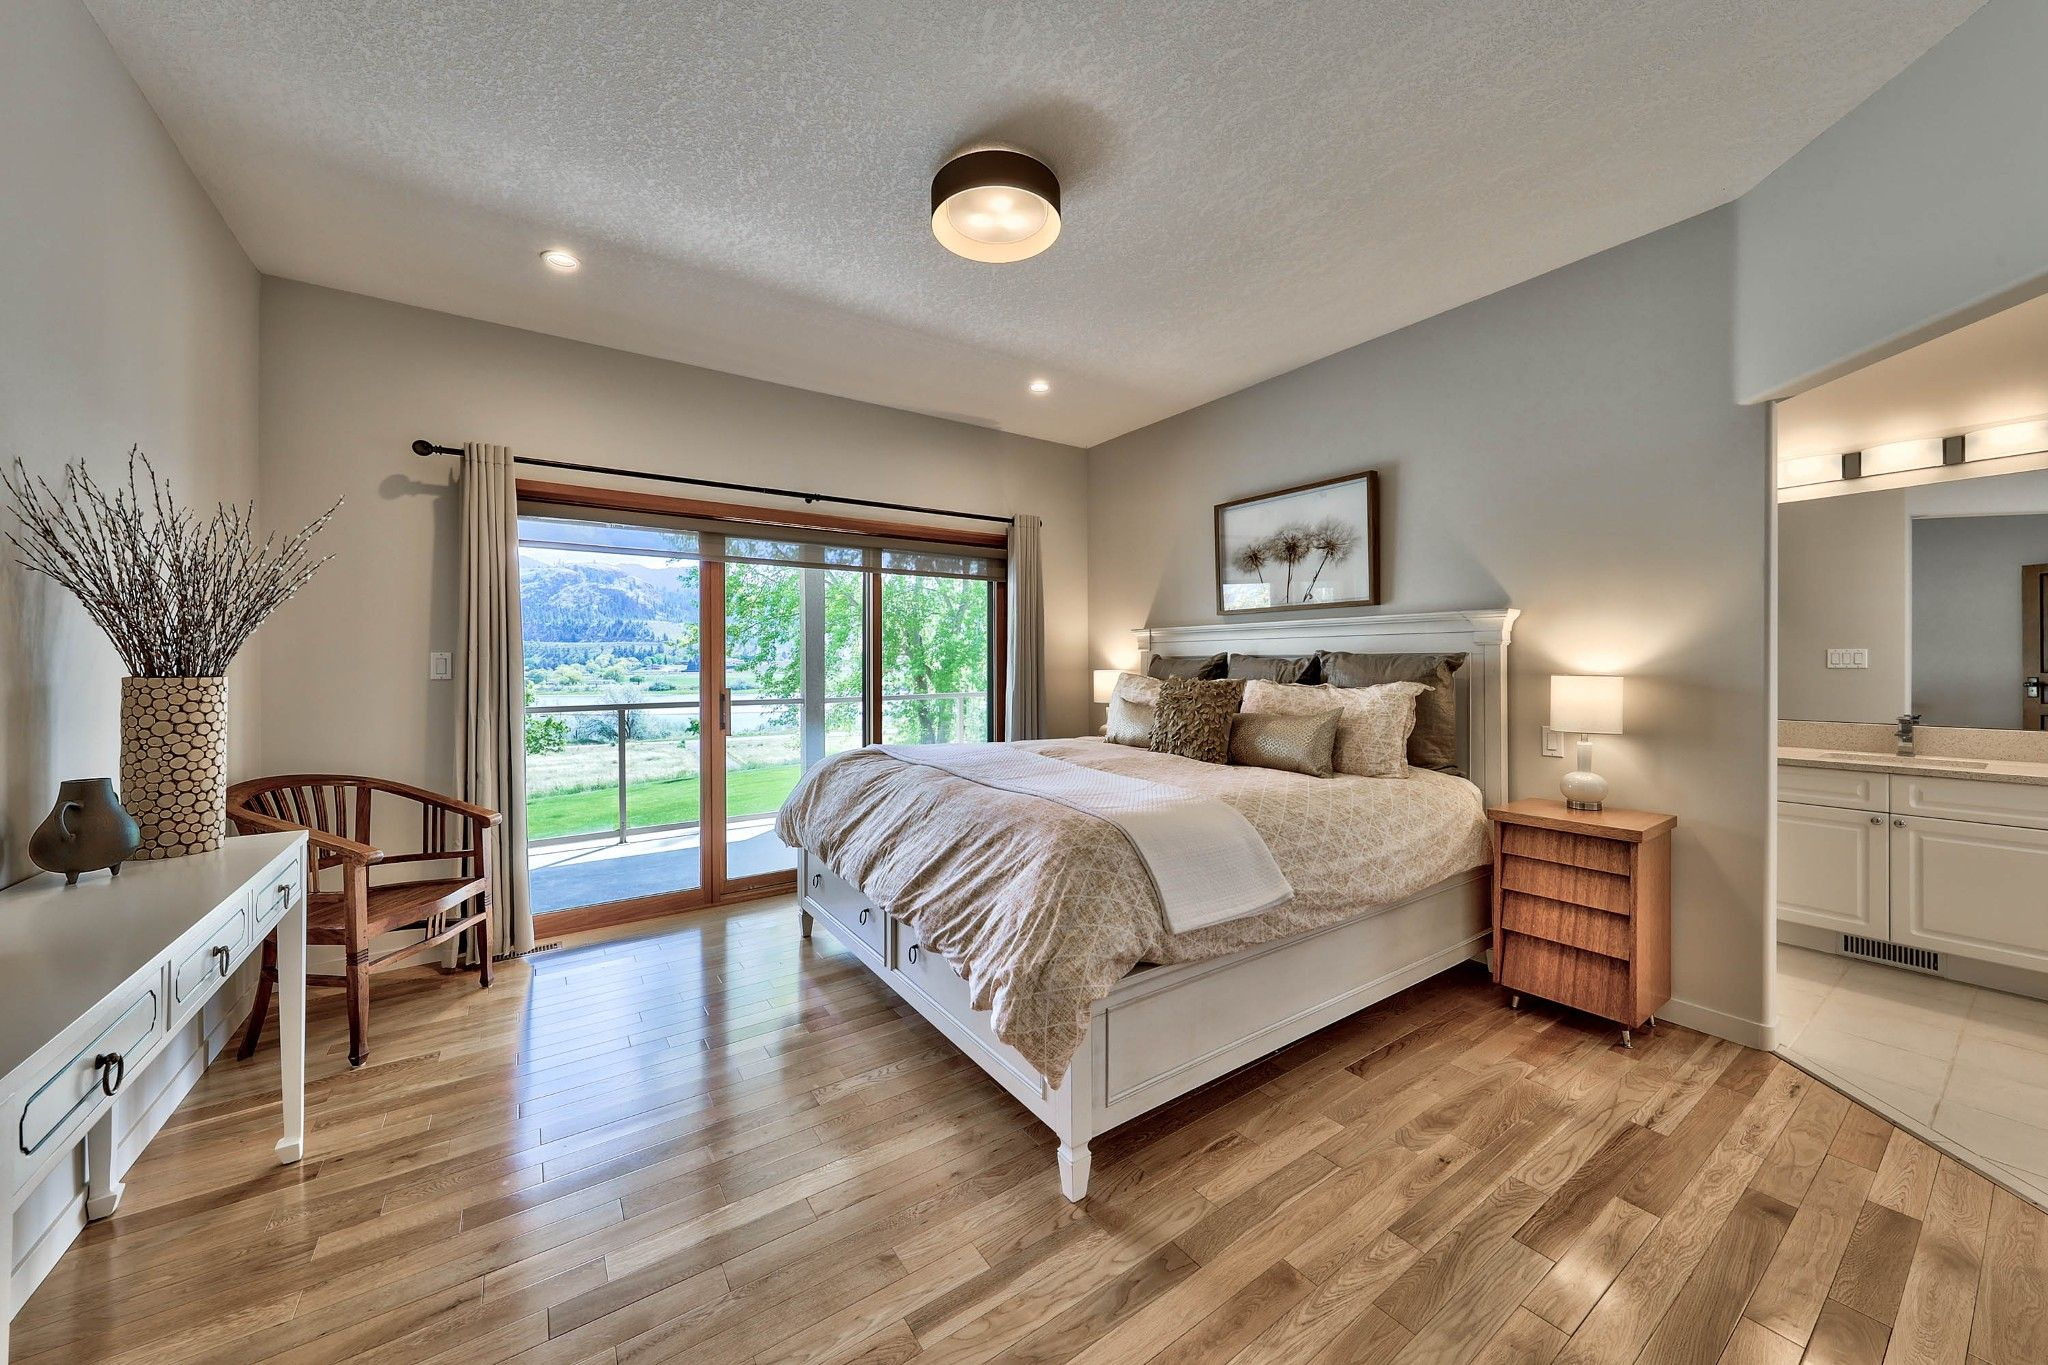 Photo 20: Photos: 3299 E Shuswap Road in Kamloops: South Thompson Valley House for sale : MLS®# 162162